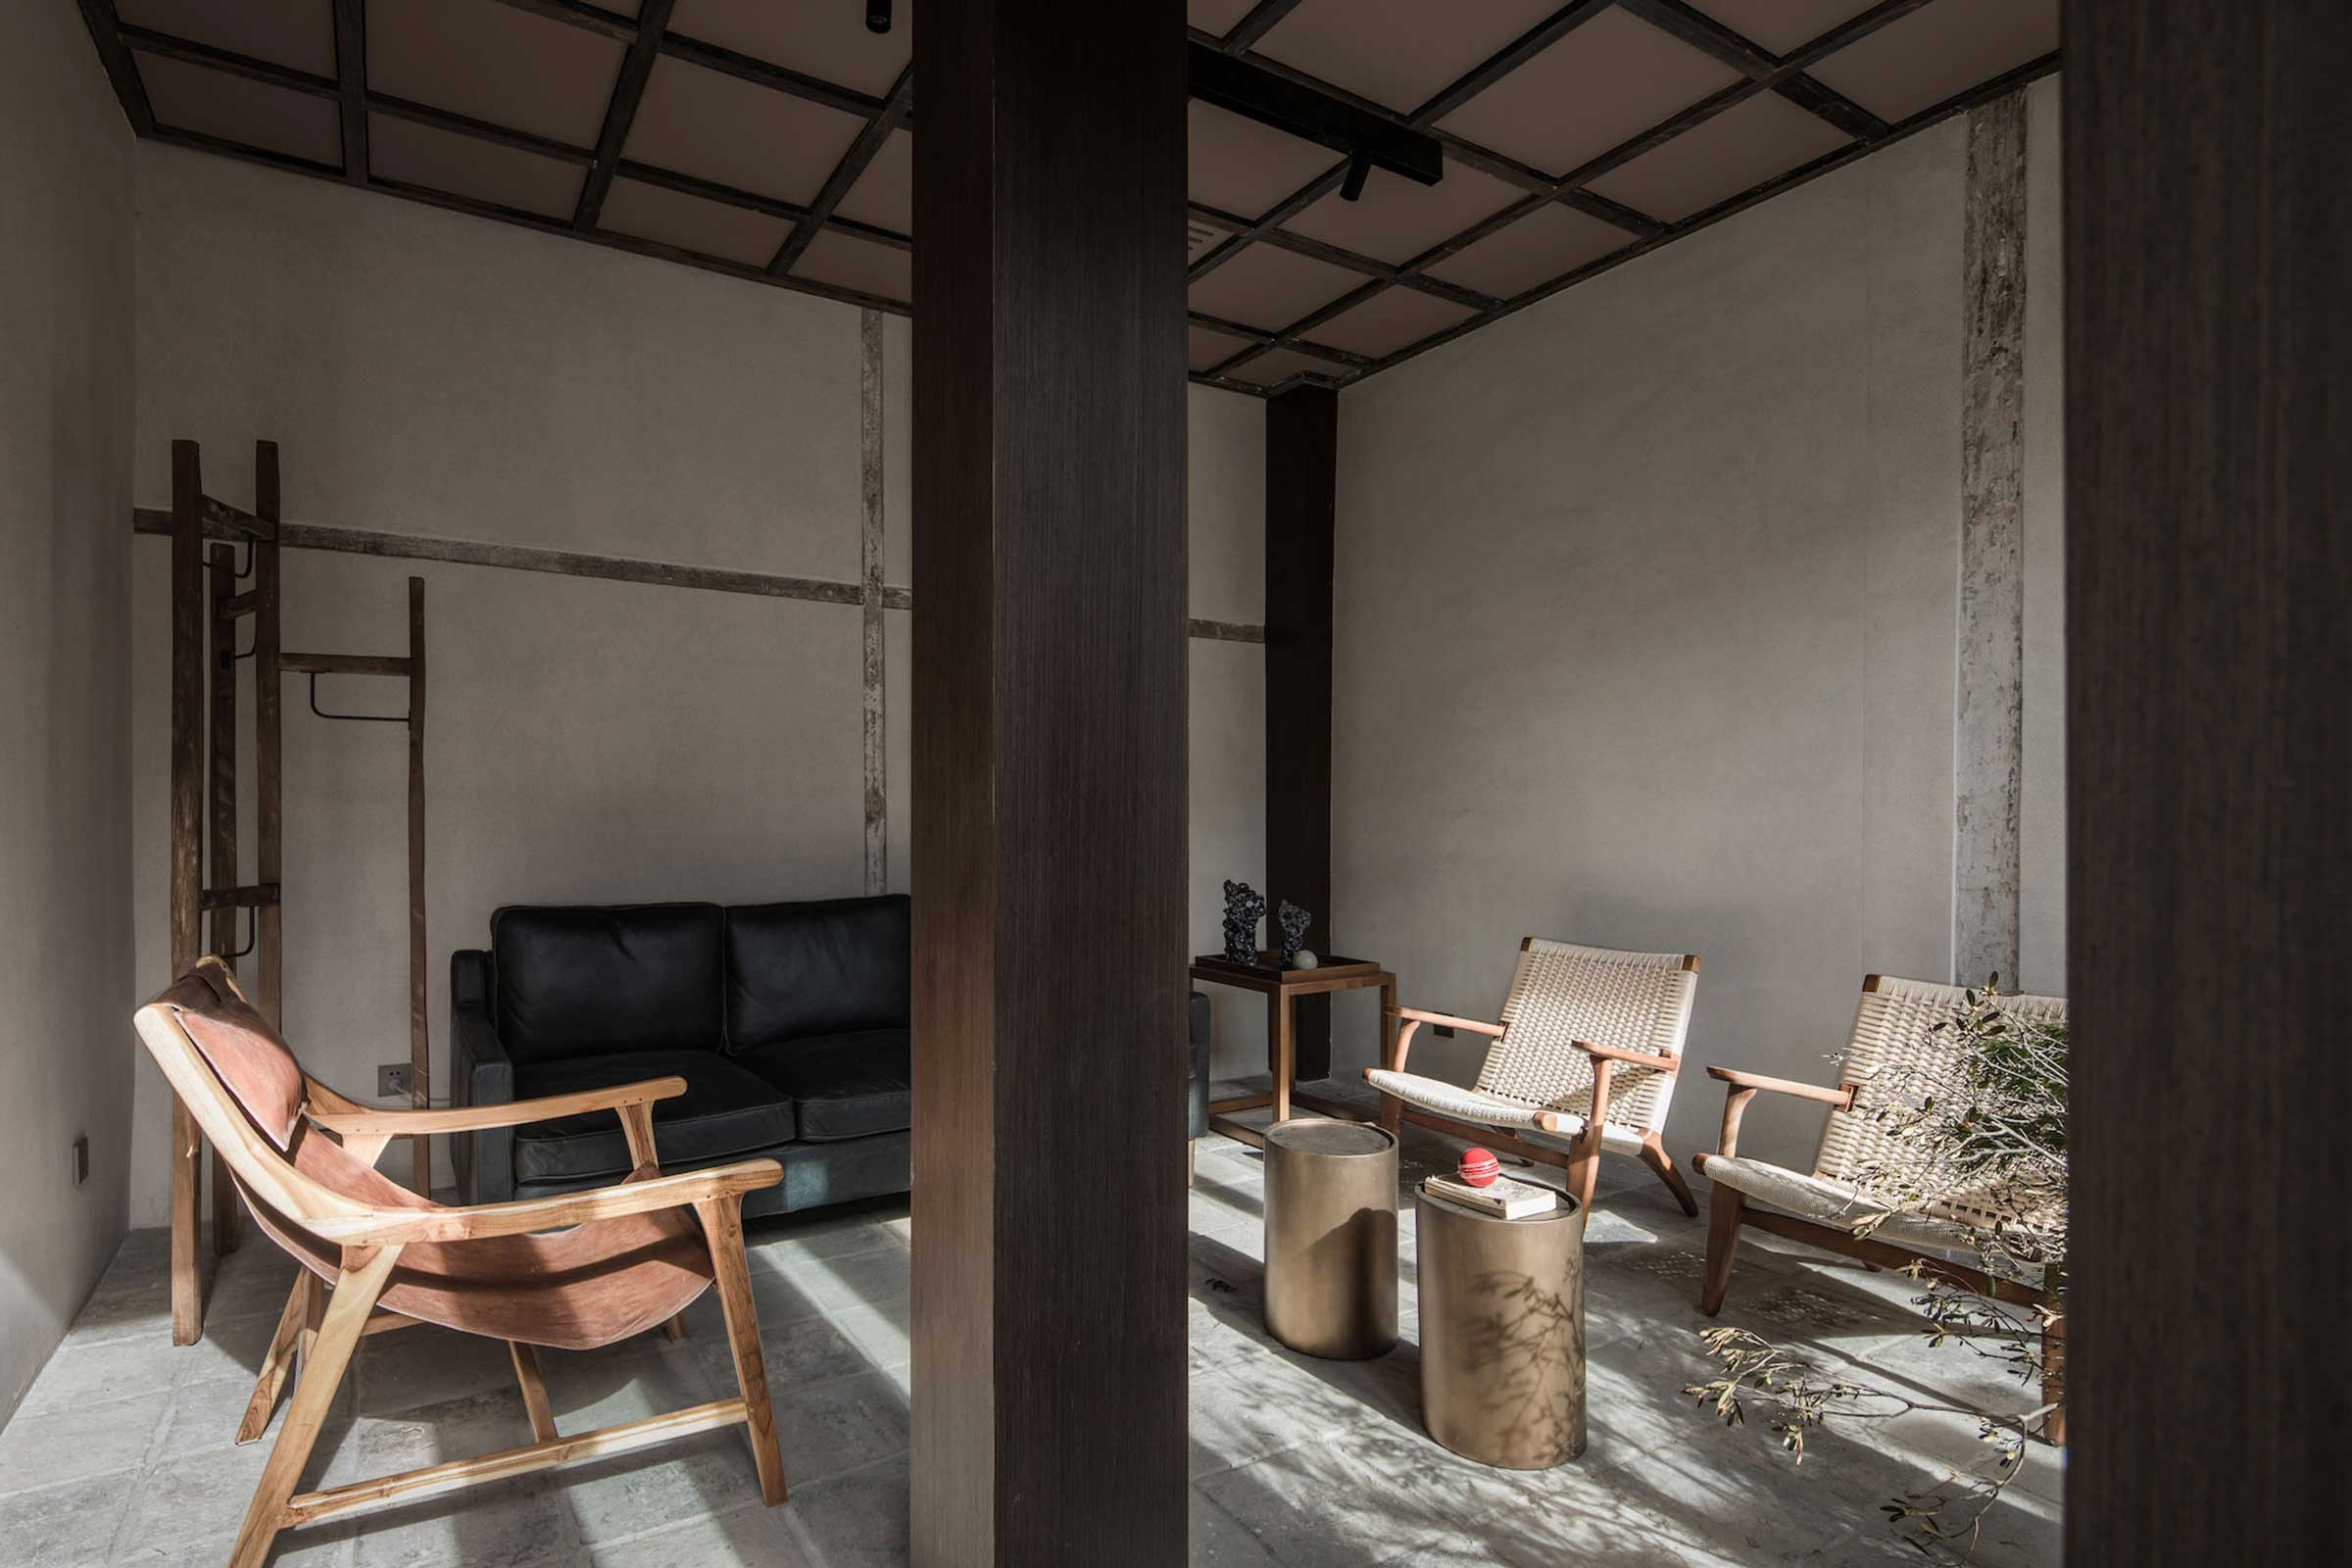 quad-house-ARCHISTRY-nolan-chao-22--private-room-in-frist-floor.jpg